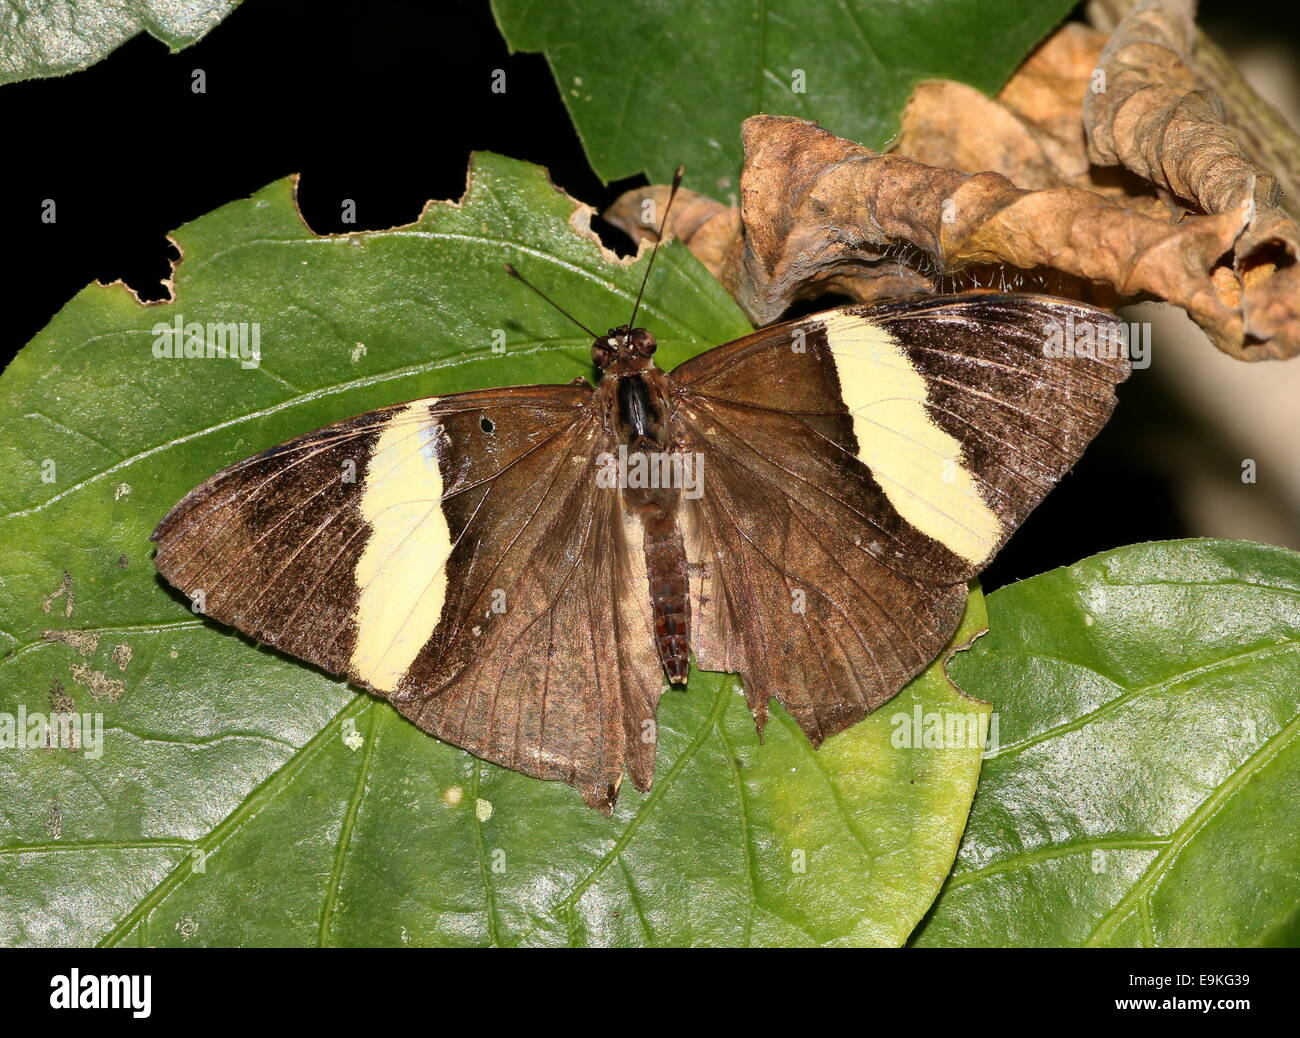 Zebra Mosaic Butterfly (Colobura dirce) a.k.a. Dirce Beauty, wings opened - Stock Image